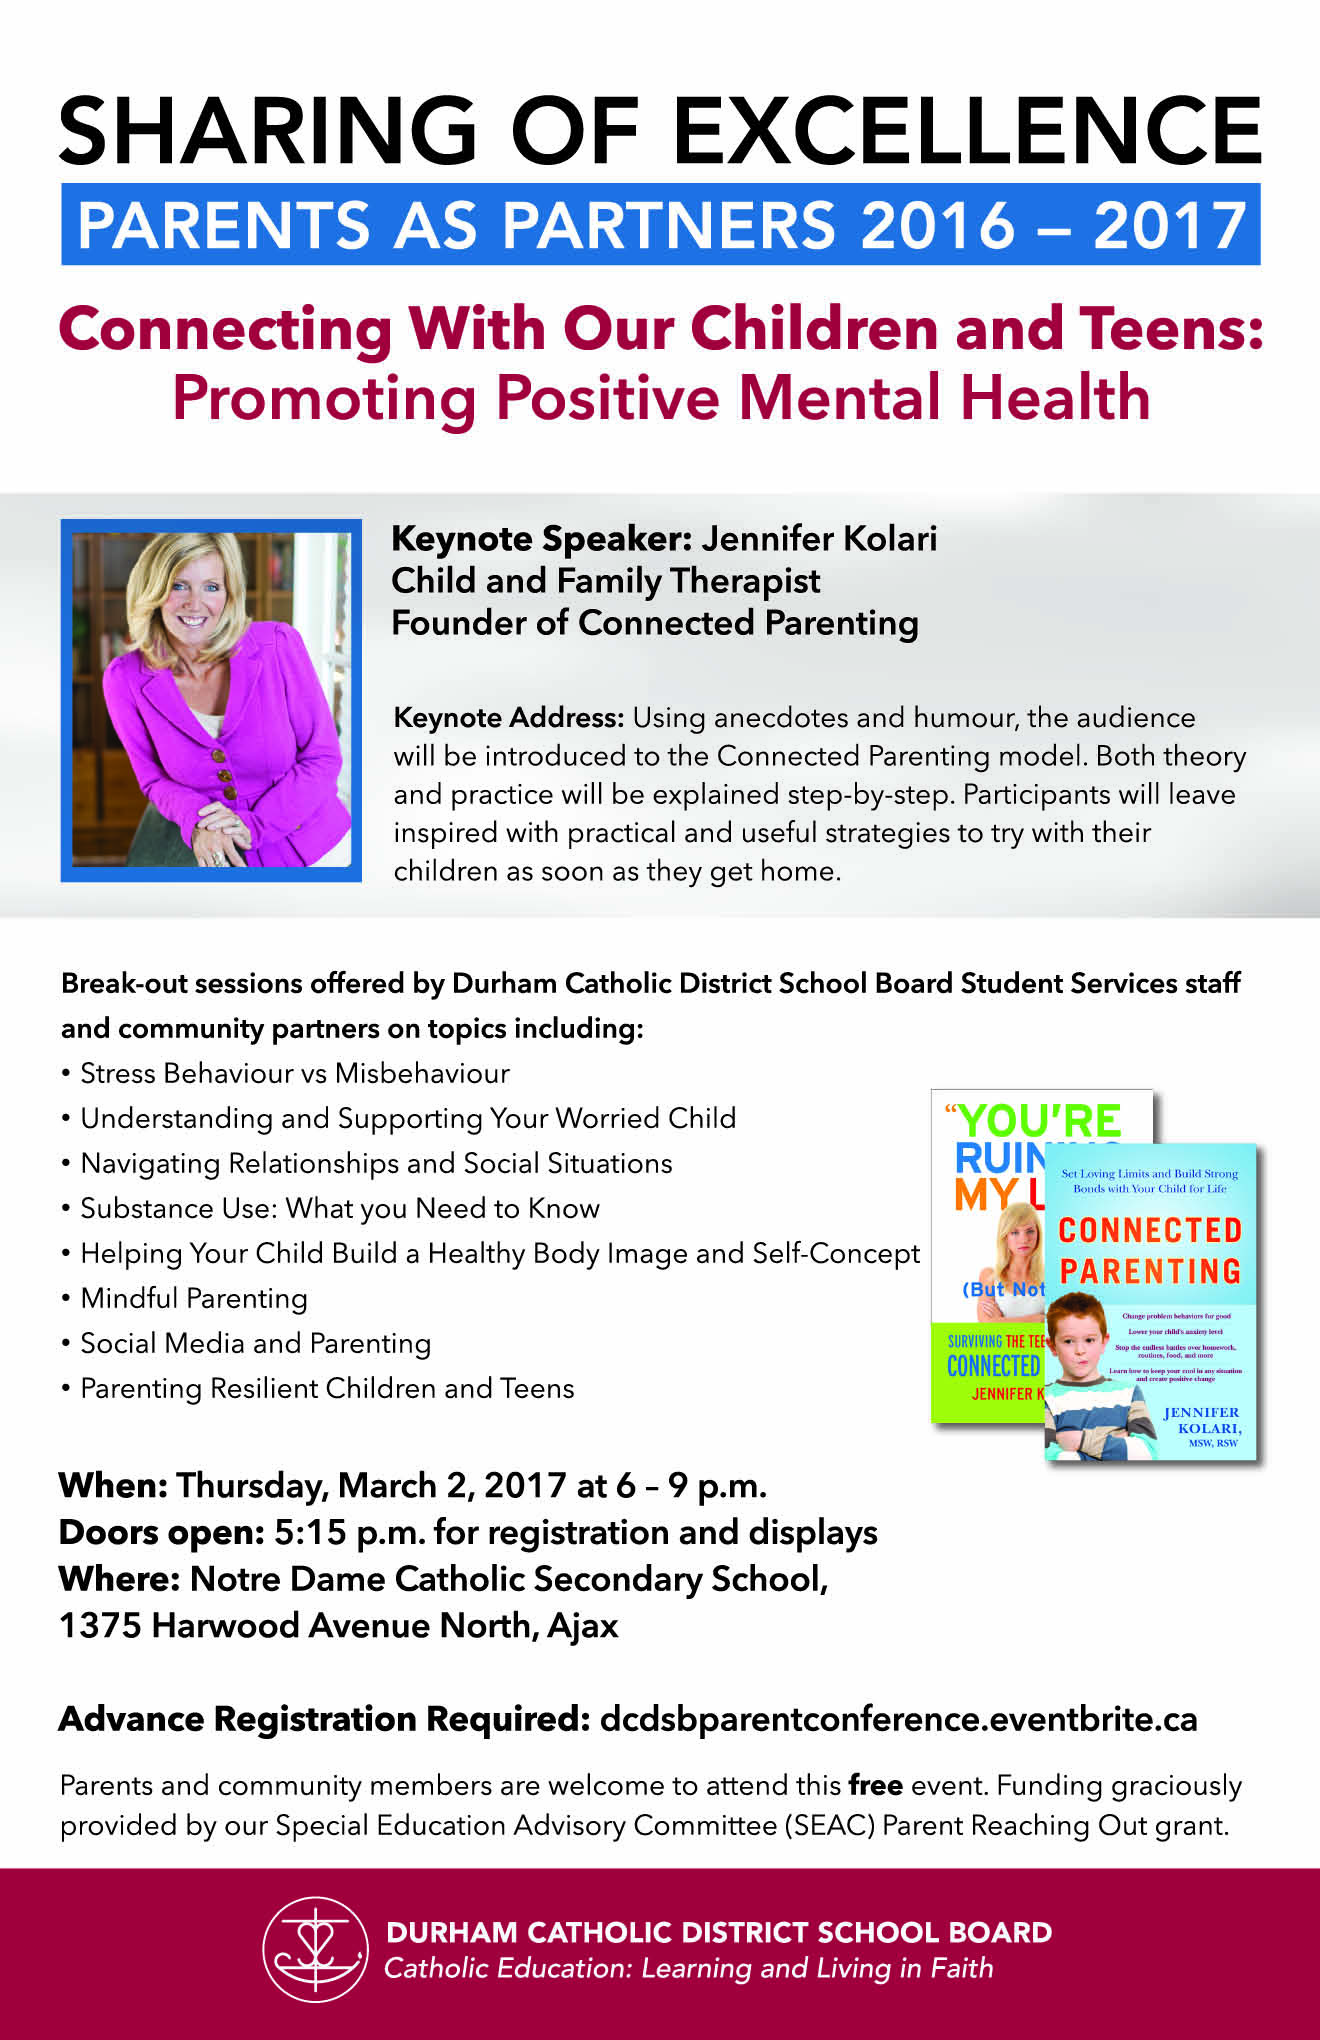 Flyer promoting the Sharing of Excellence, Parents as Partners 2016-2017 - Connecting with Our Children and Teens: Promoting Positive Mental Health